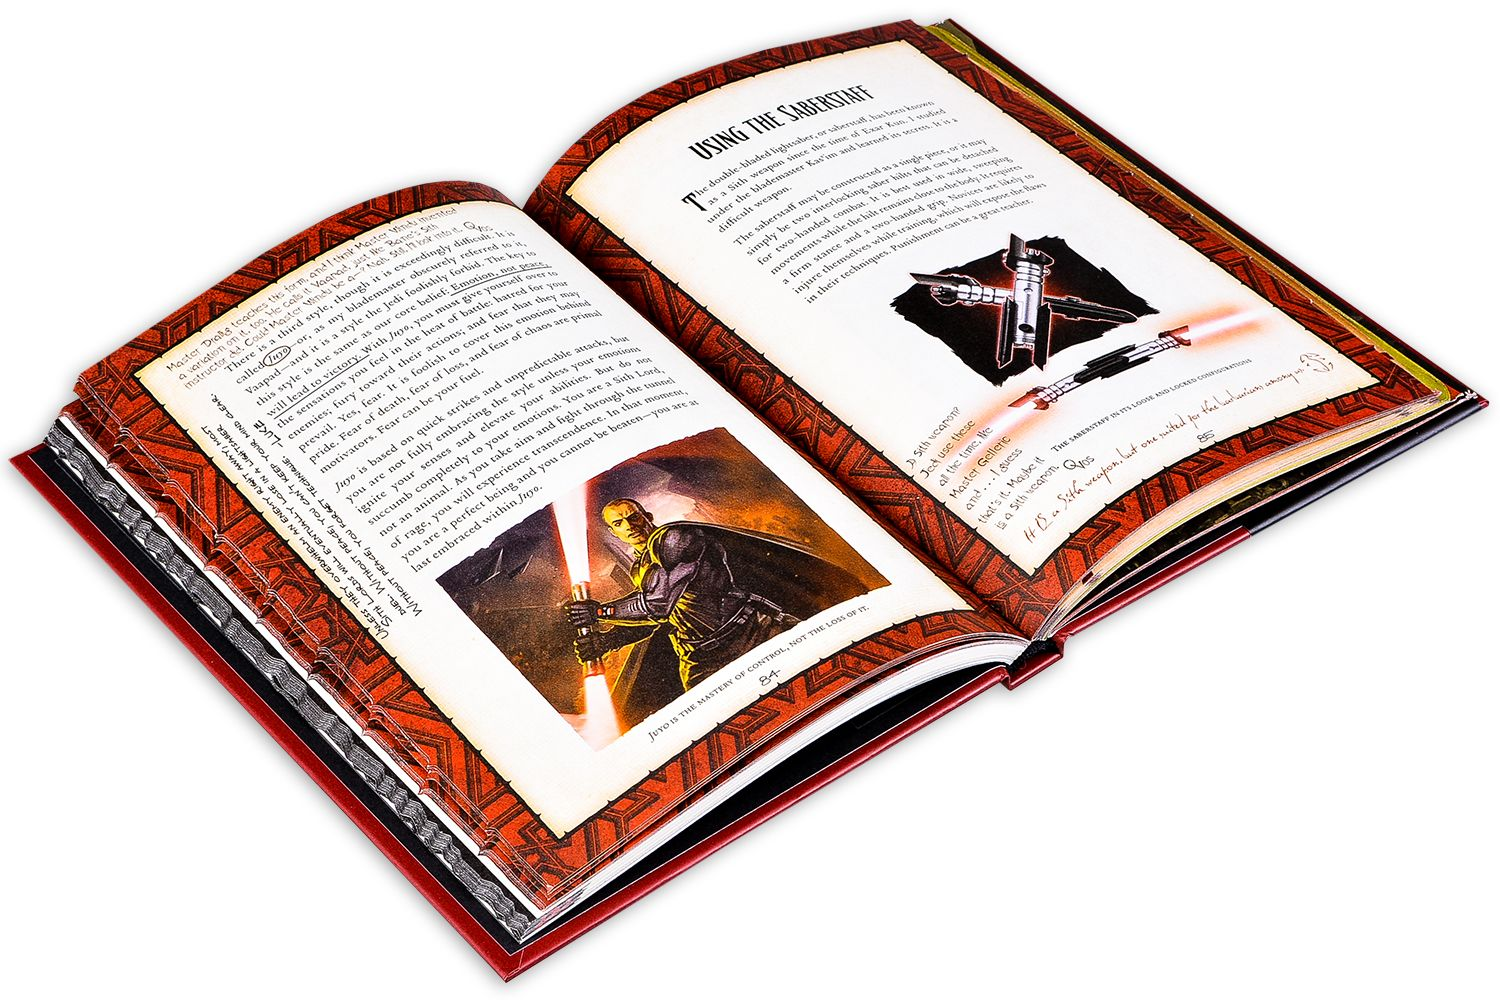 Star Wars. Book of Sith: Secrets from the Dark Side - 3